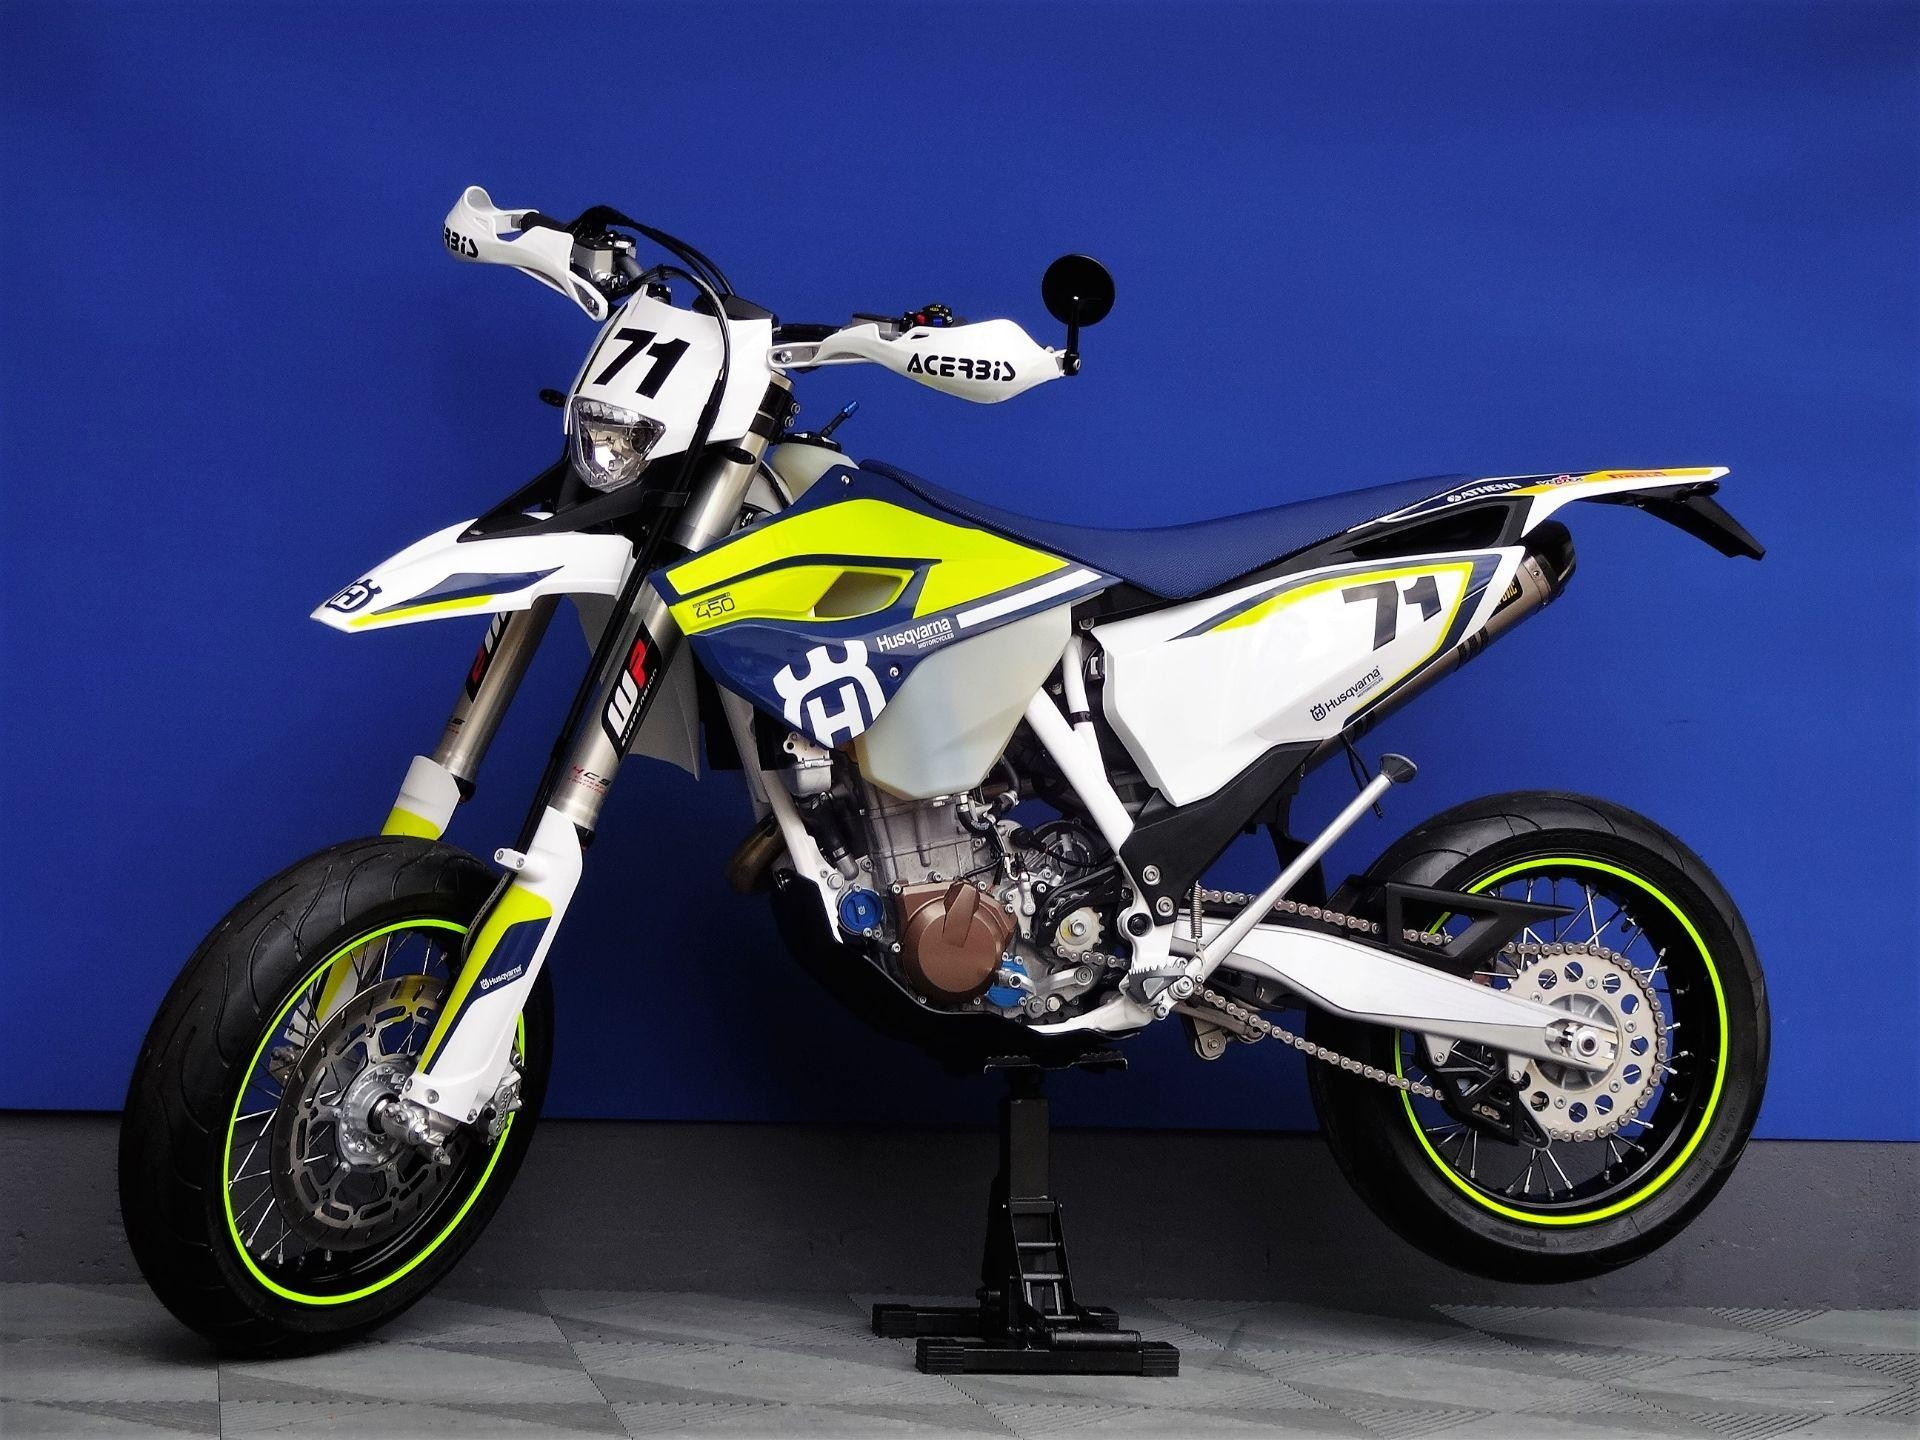 husqvarna 450 fe akrapovic vogel motorbikes sch pfheim. Black Bedroom Furniture Sets. Home Design Ideas